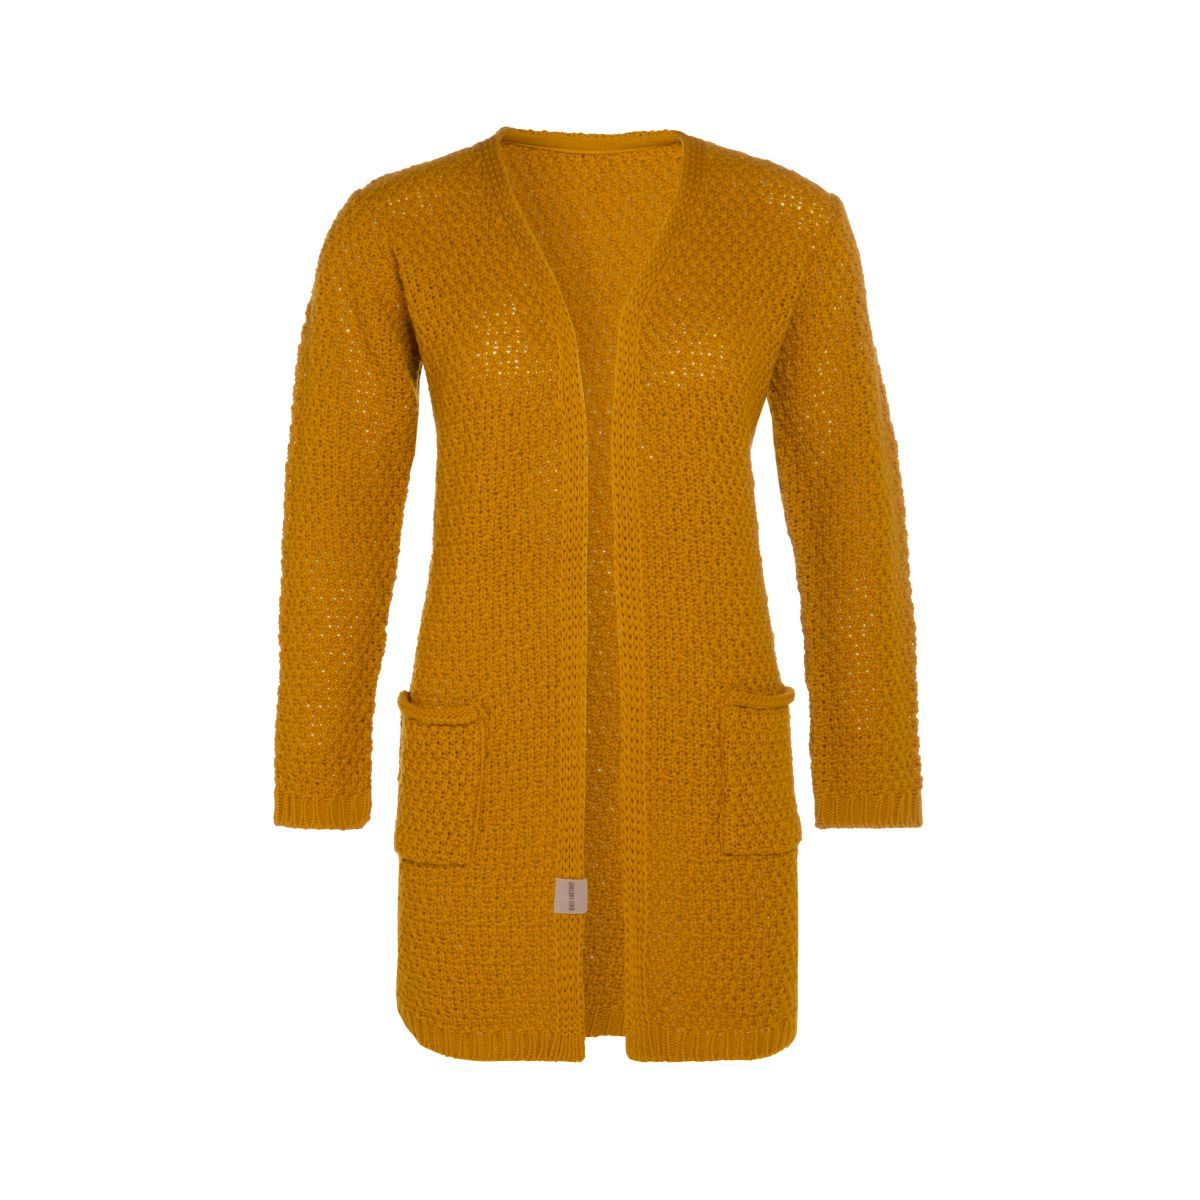 luna knitted cardigan ochre 4042 with side pockets